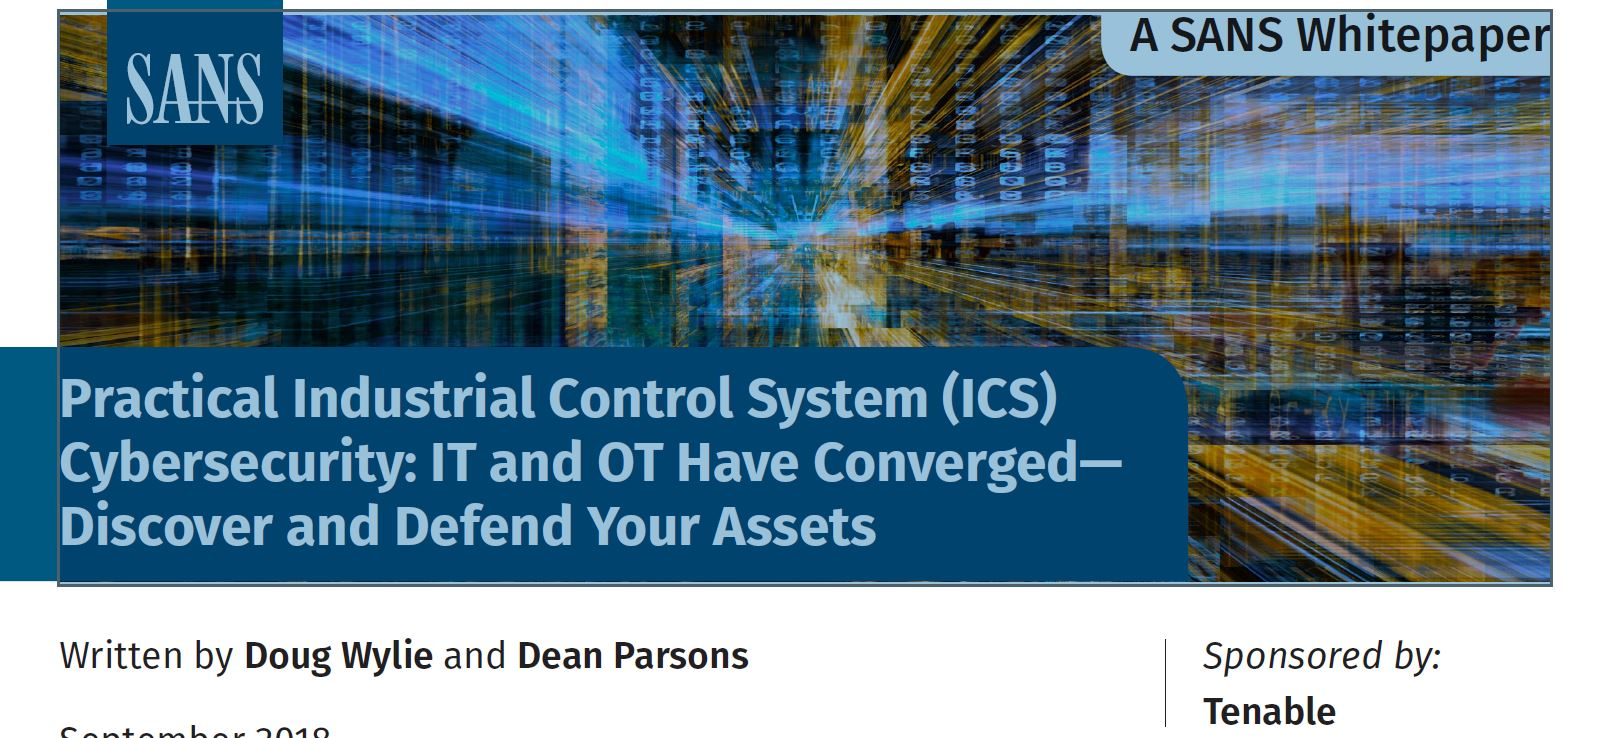 Practical Industrial Control System (ICS) Cybersecurity: IT and OT Have Converged - Discover and Defend Your Assets